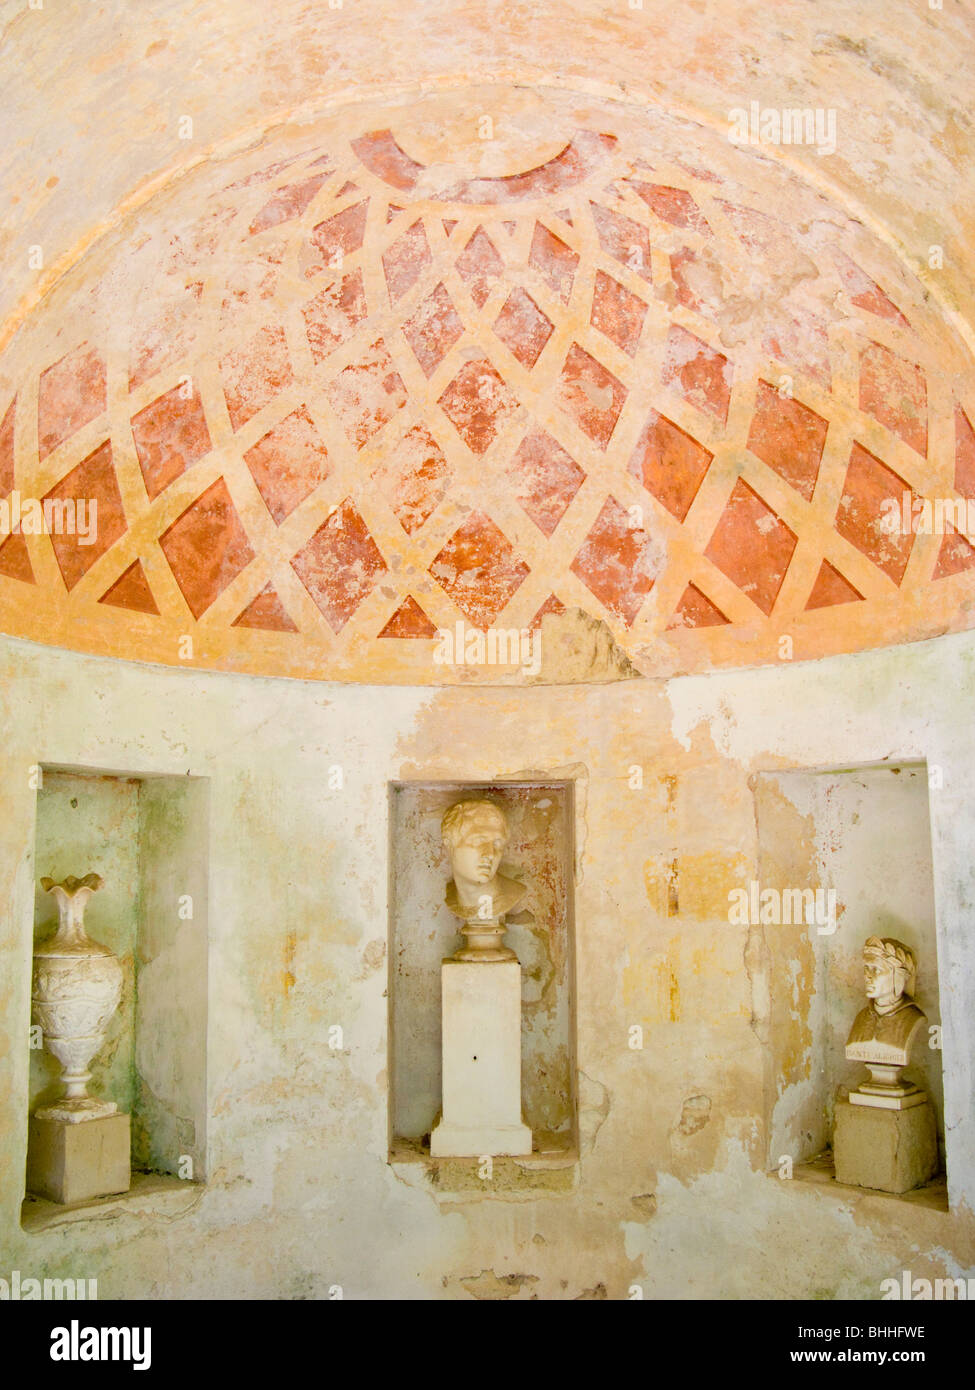 Domed summerhouse with statues in niches - Stock Image